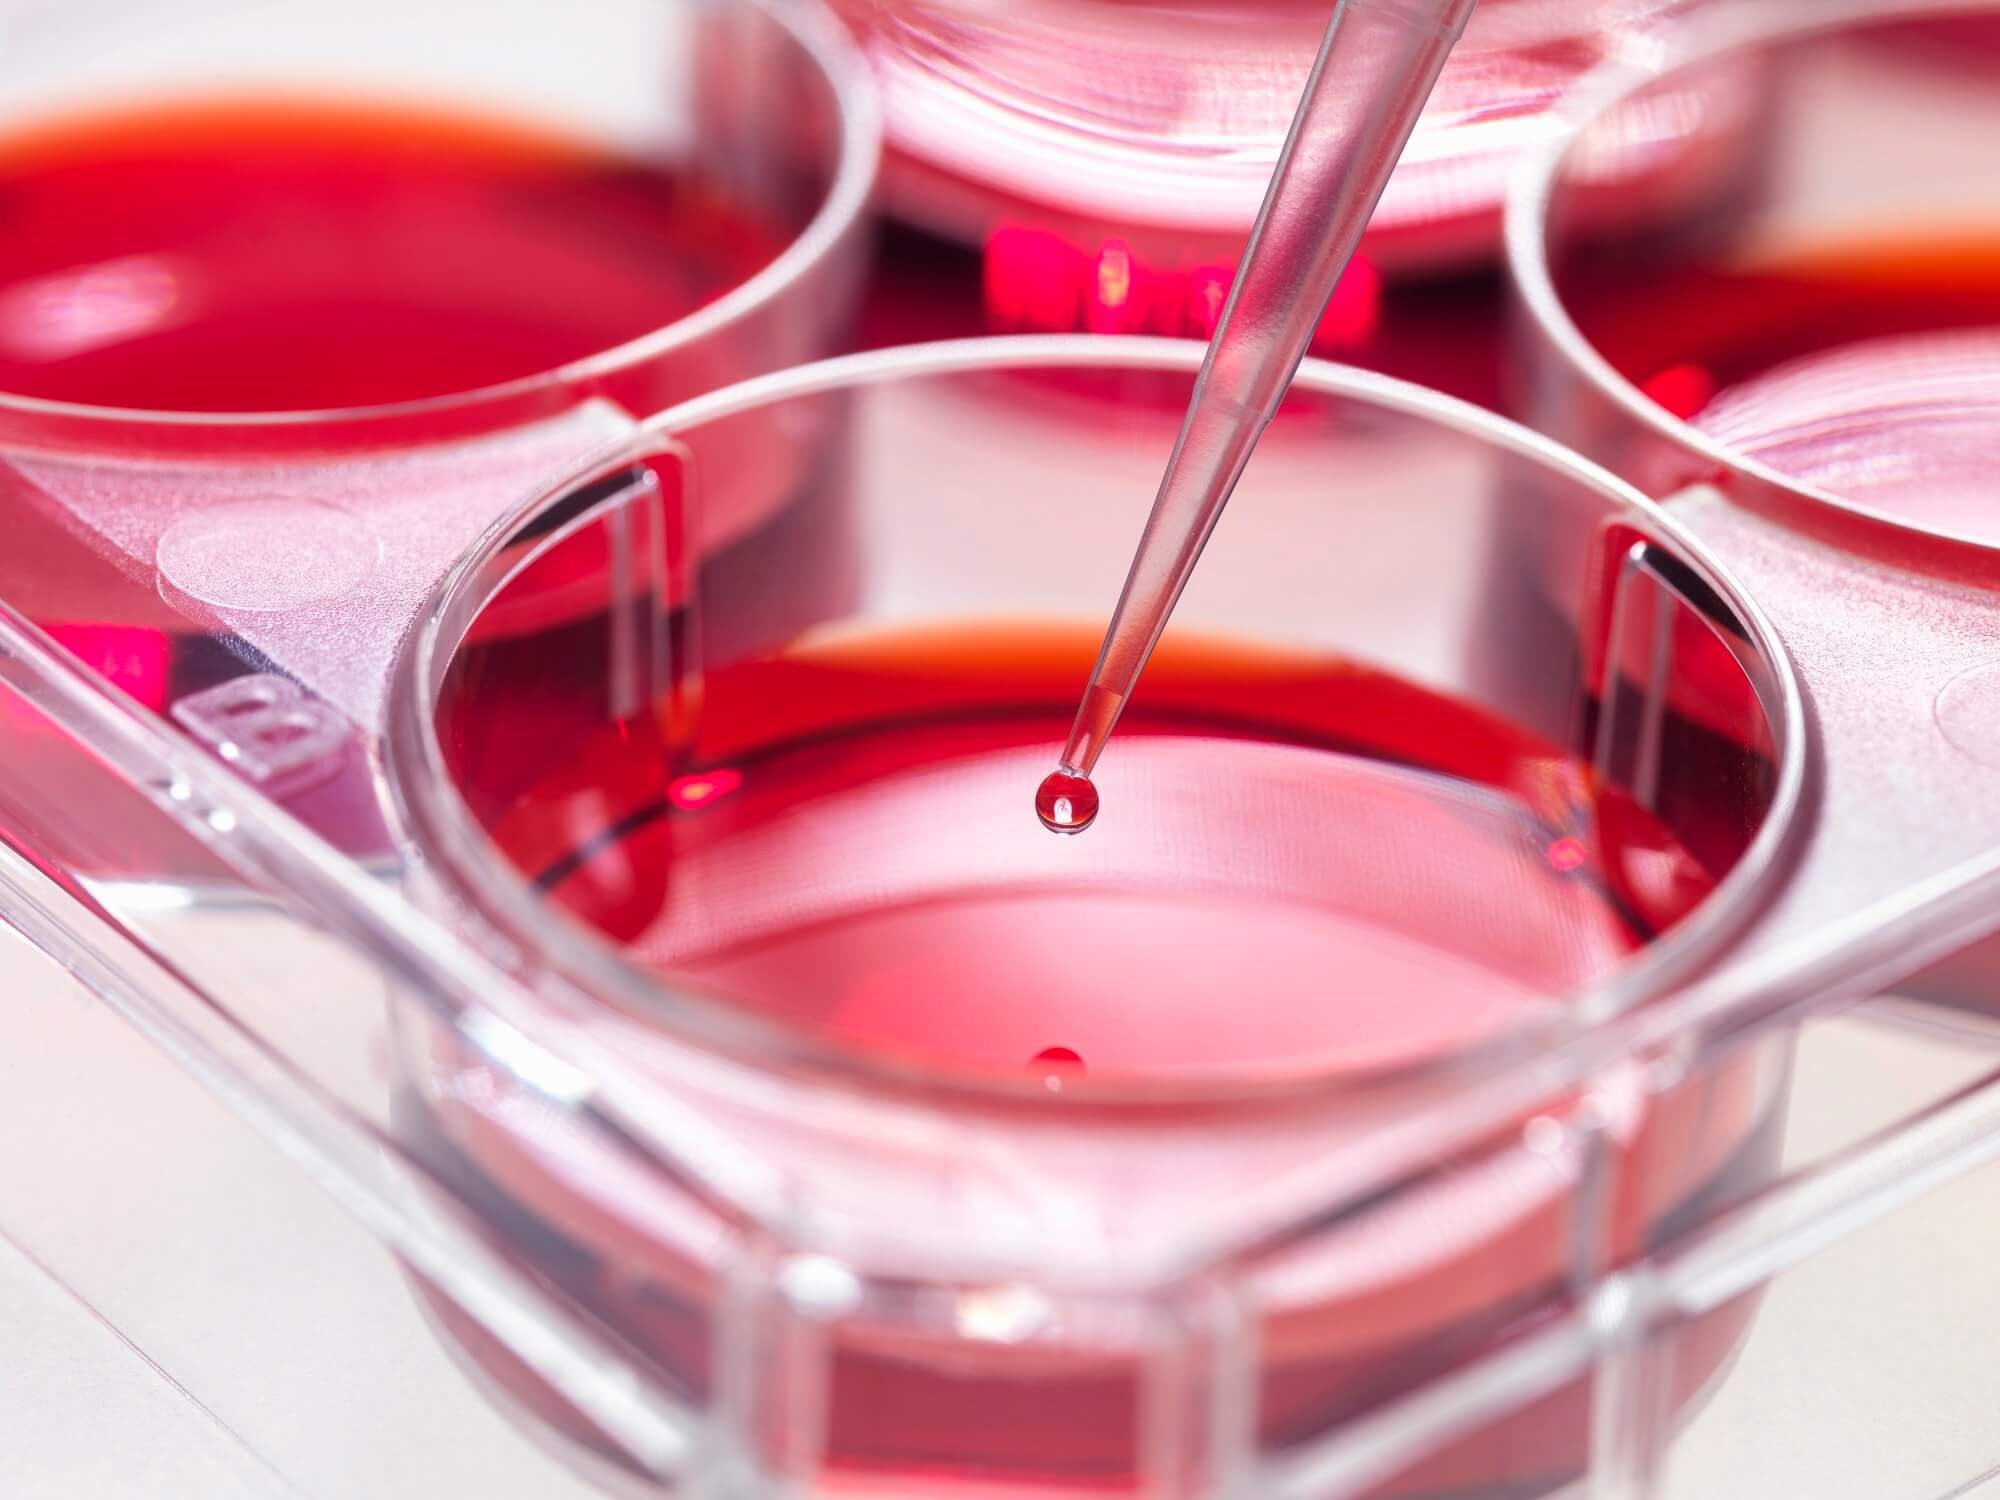 Peripheral Blood: An Alternative Source of Stem Cells in Thalassemia